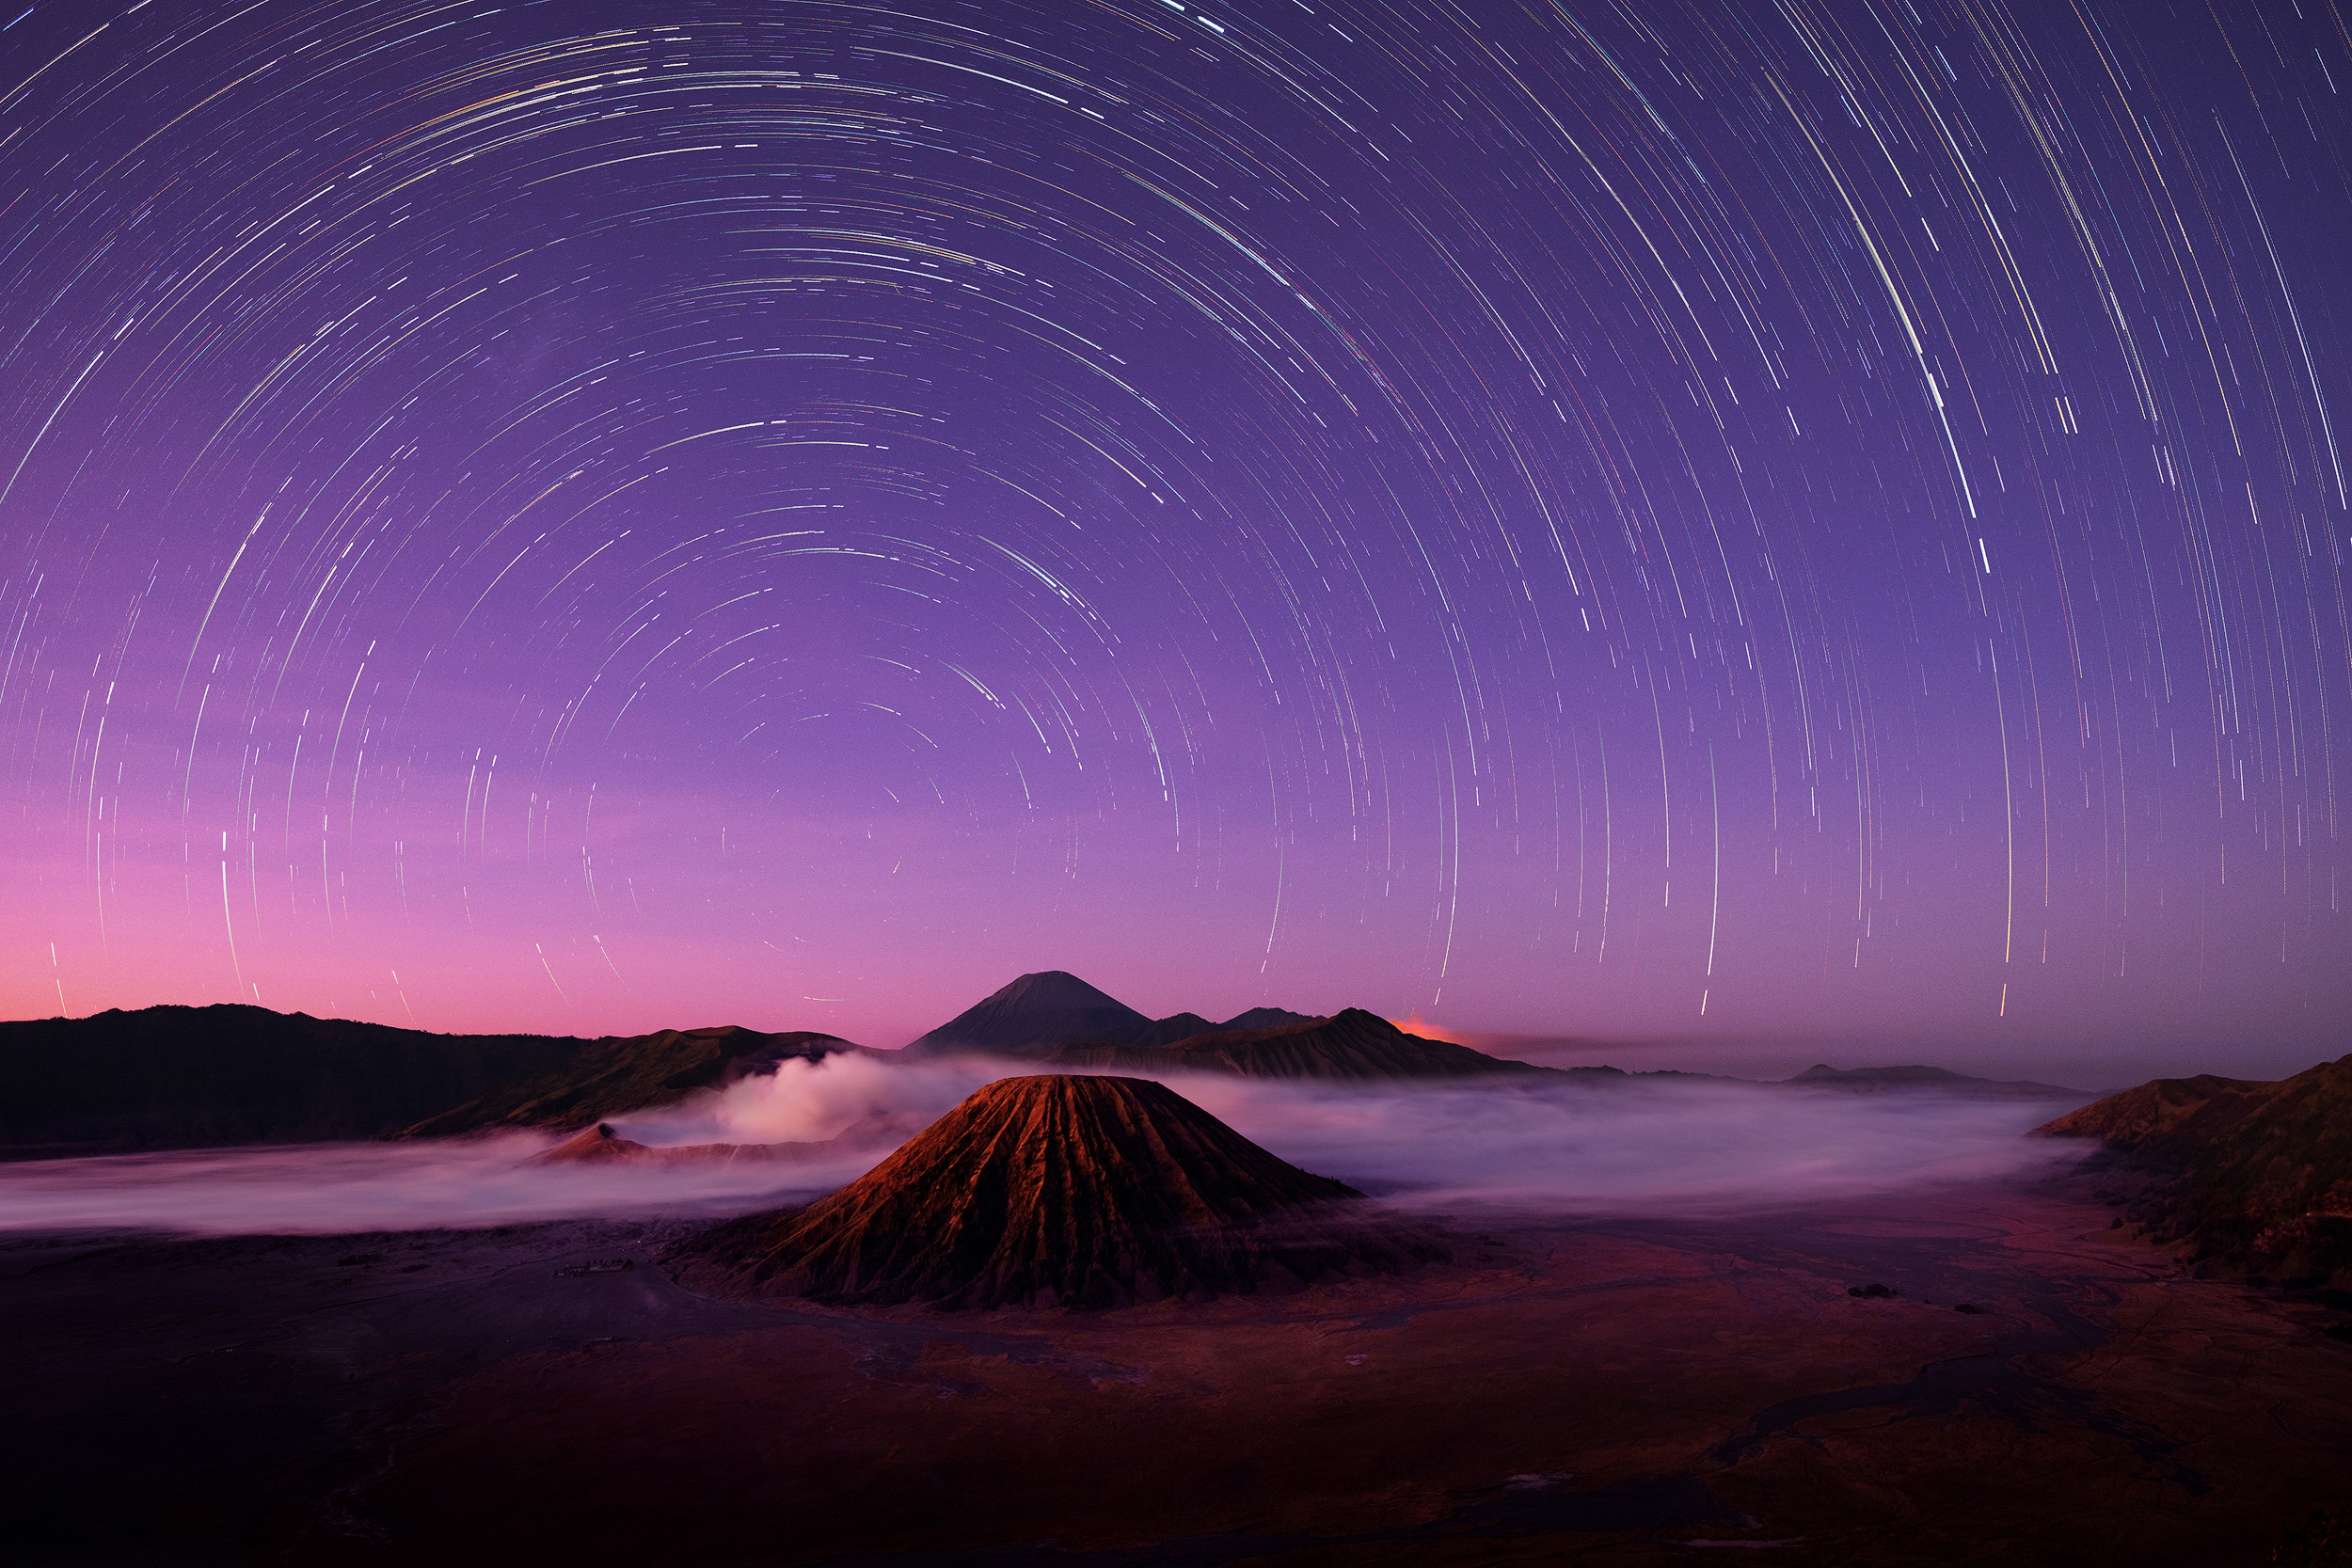 Stars Above Bromo   We arrived on the edge of the crater overlooking the caldera at around 3am and the sky was full of really bright stars. This image uses the intervalometer on the Fuji X-T1 to show the stars movement across the sky for a little over an hour as the sky went from complete darkness to pale pre-dawn light. If you notice on the edge of the crater to the right of centre there's a red/orange glow which was visible even in complete darkness. There are a couple of very active volcanos in this image, so I assume it's some kind of lava glow from a crater